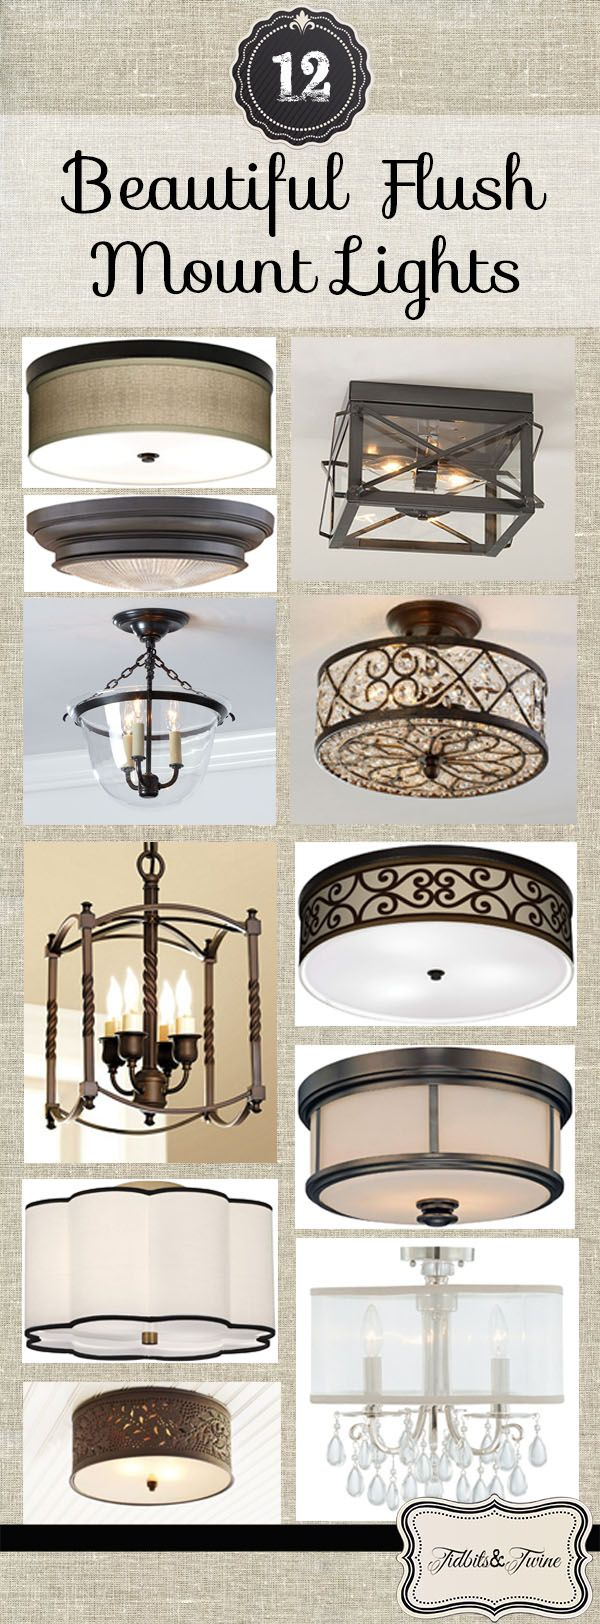 12 Beautiful Flush Mount Ceiling Lights - Best 25+ Flush Mount Lighting Ideas On Pinterest Flush Mount